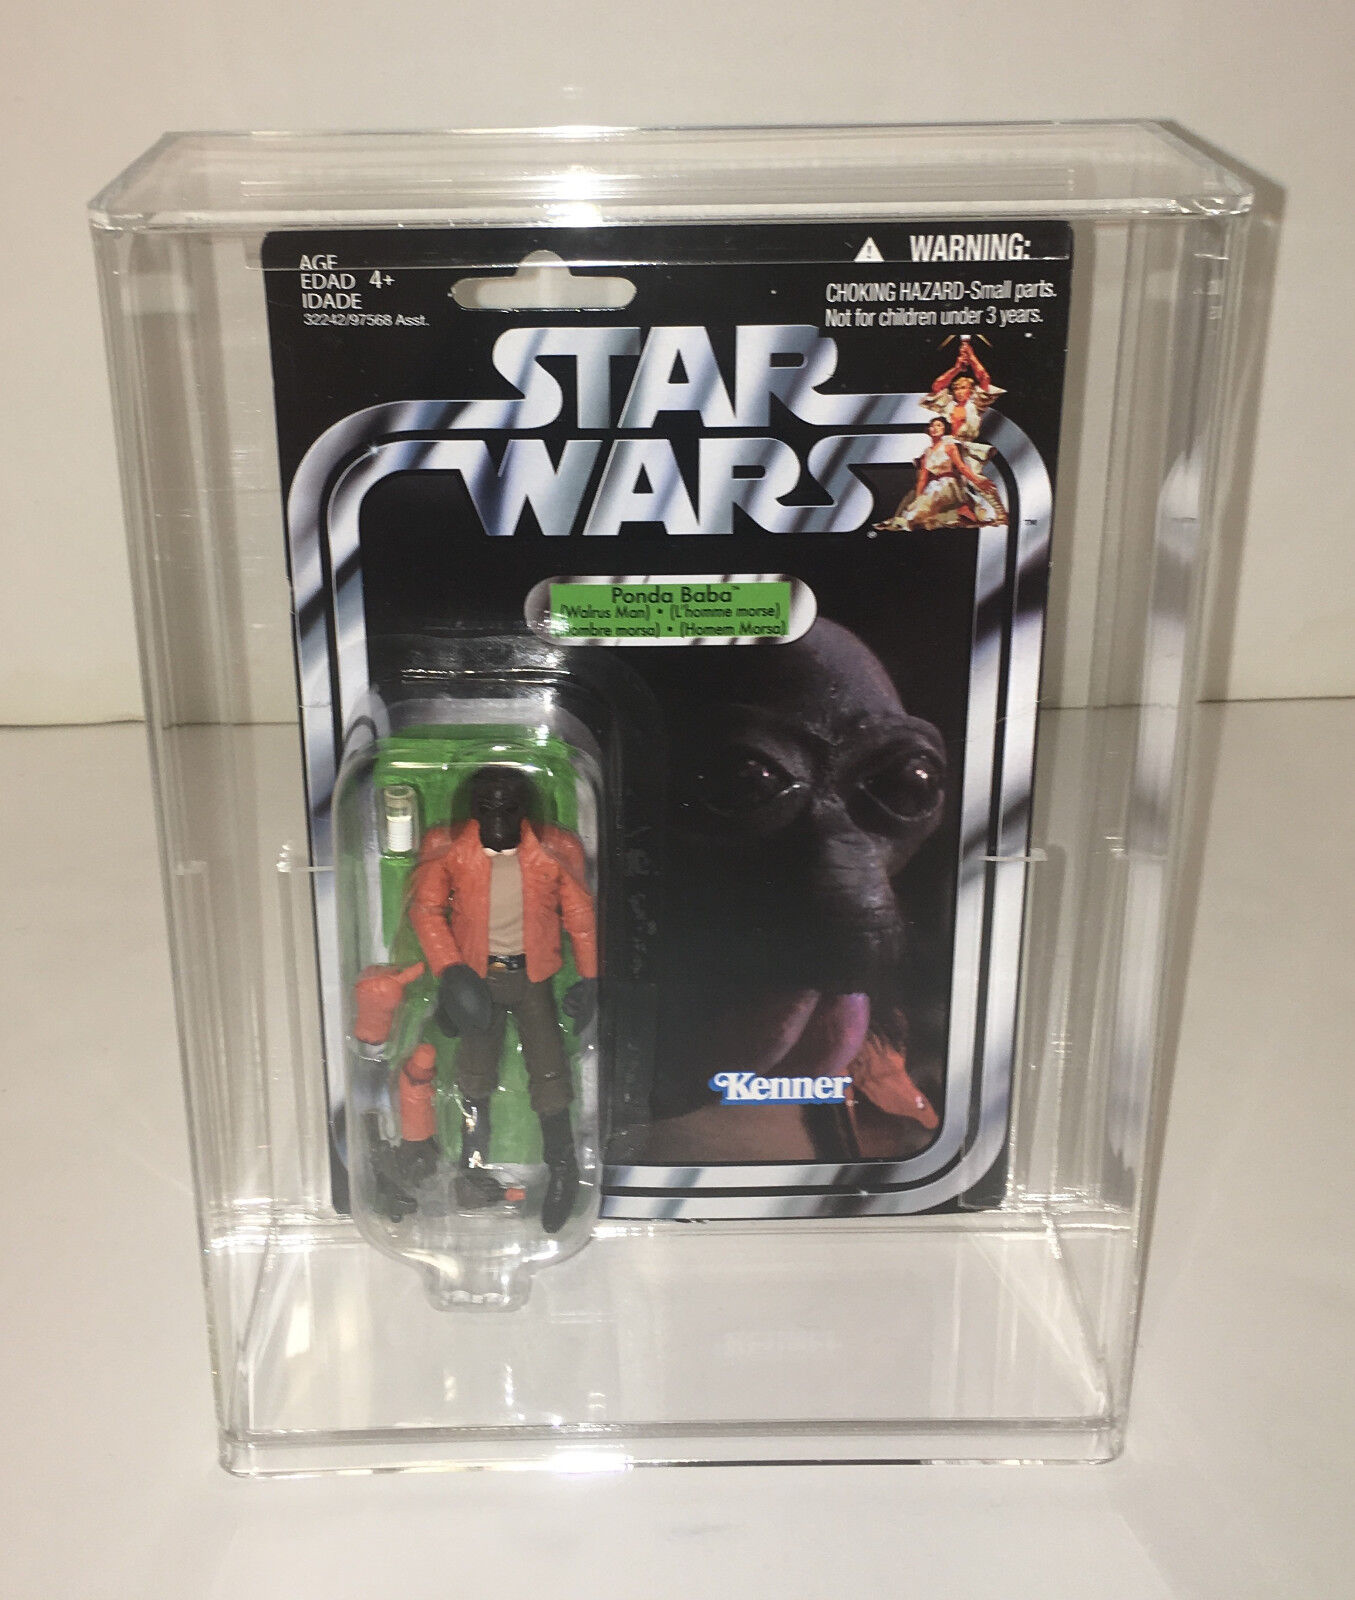 2011 Hasbro STAR WARS The Vintage Collection PONDA BABA Figure in ACRYLIC CASE